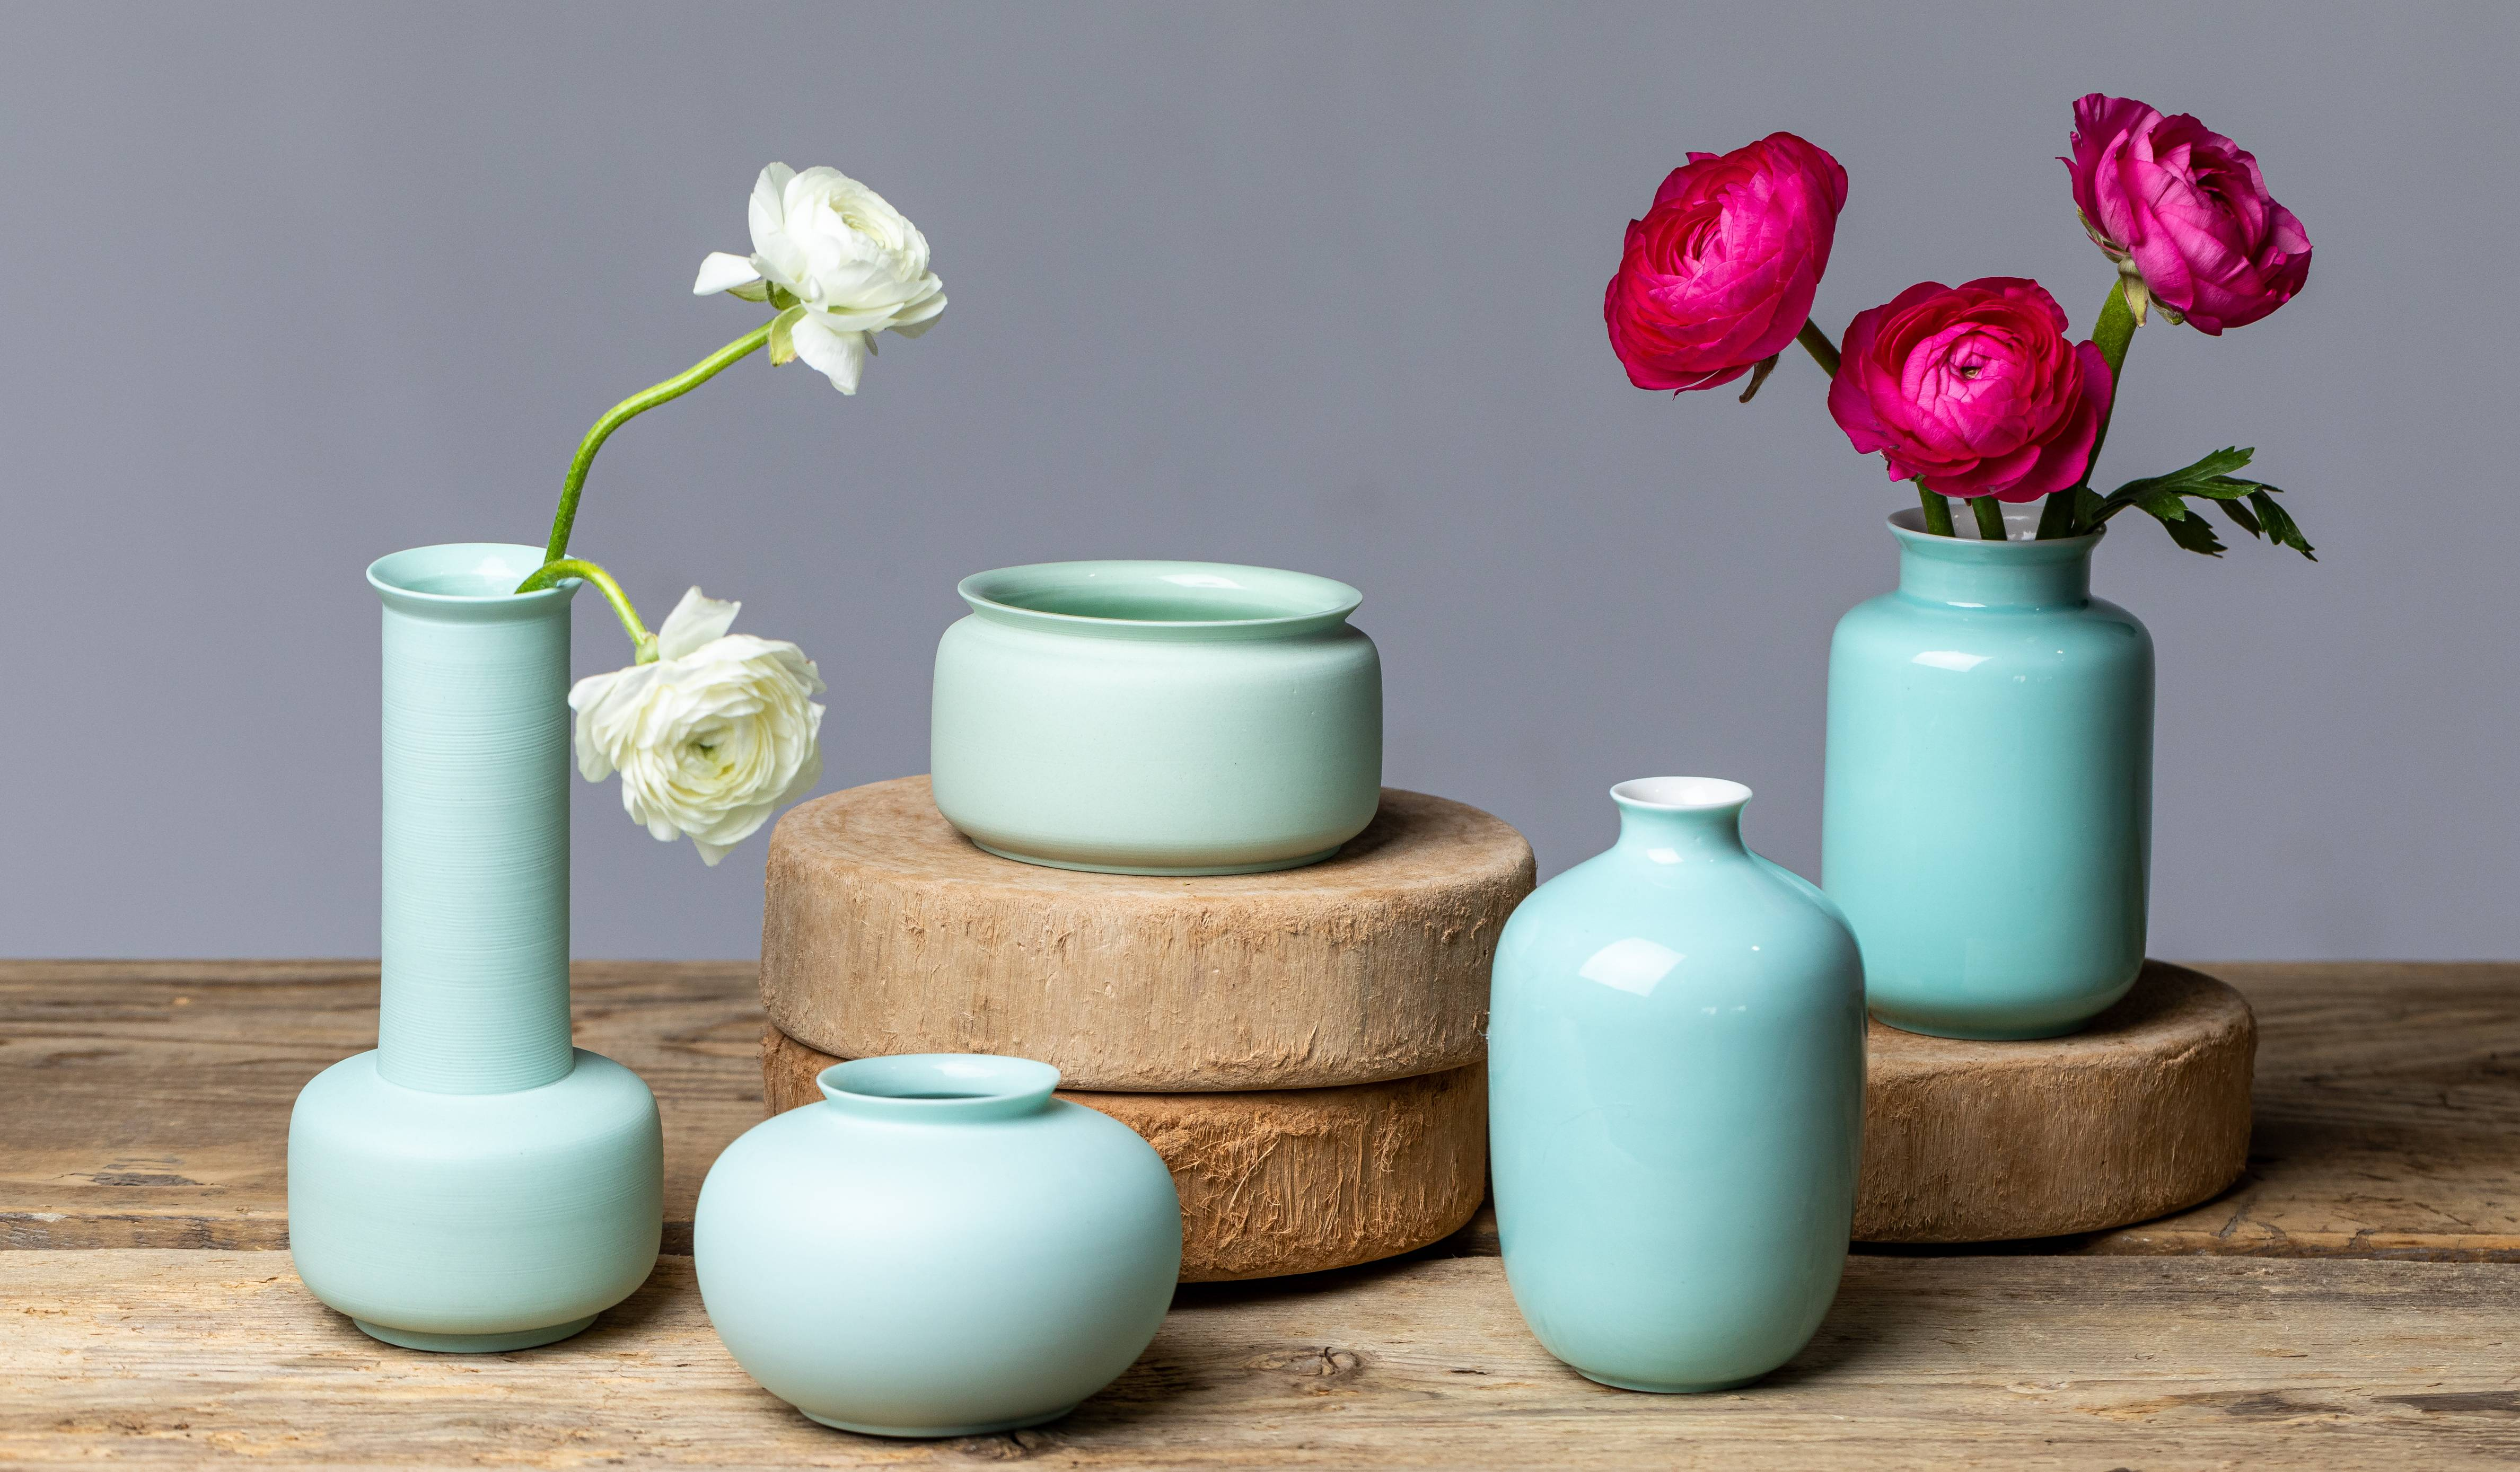 Artisan pieces for your home & lifestyle